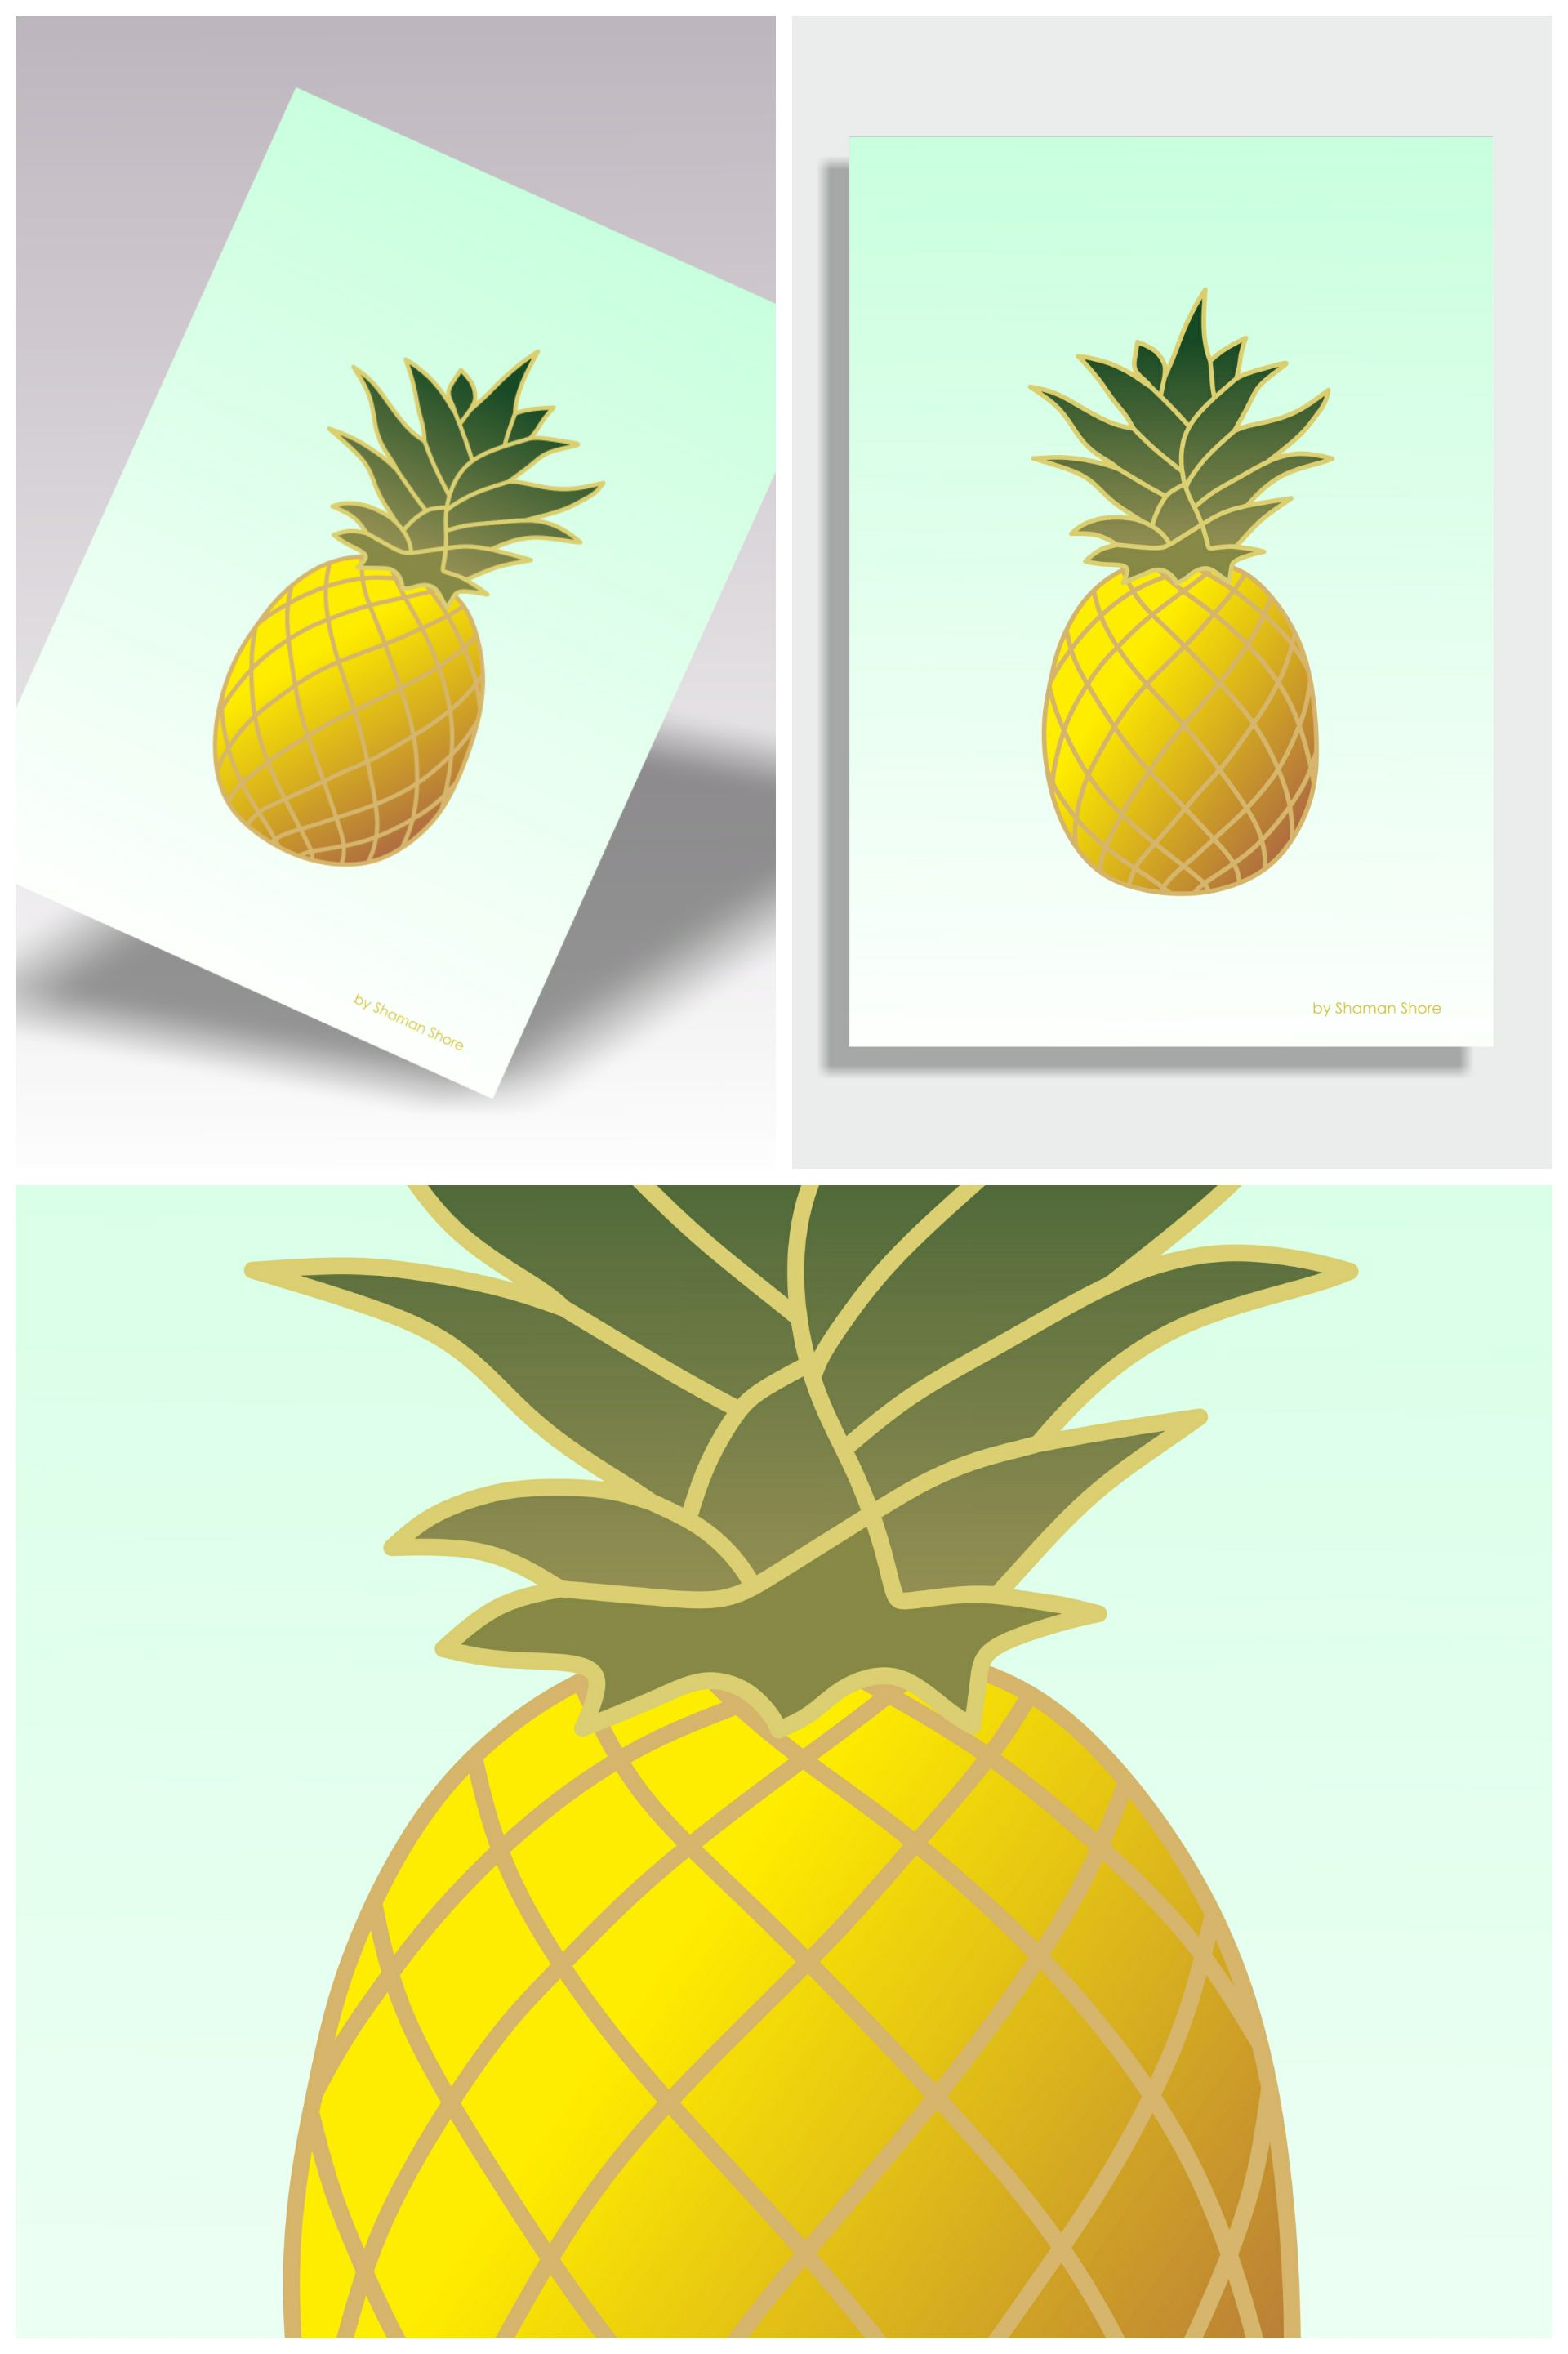 Pineapple Print, Pineapple Décor Wall Print, Pineapple Wall Art ...